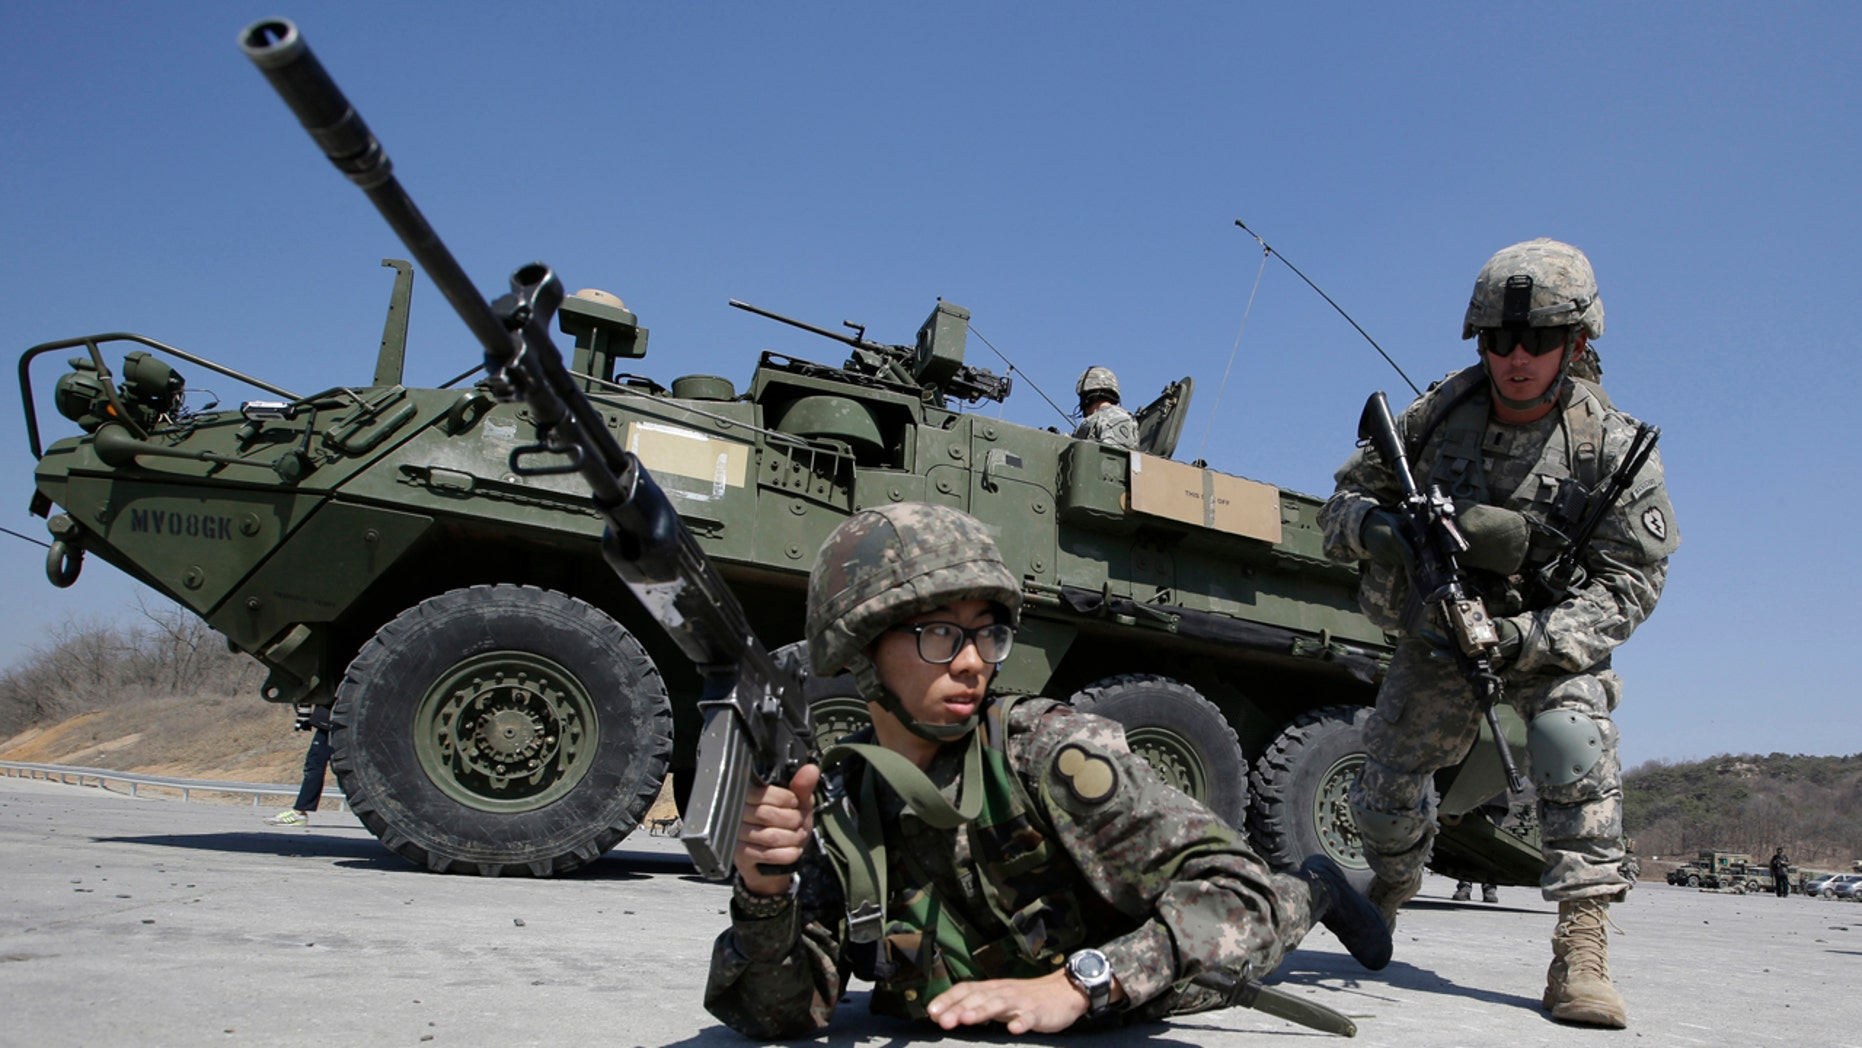 In this March 25, 2015, file photo, U.S. Army soldiers from the 25th Infantry Division's 2nd Stryker Brigade Combat Team and a South Korean Army soldier participate in a demonstration of the combined arms live-fire exercise during the annual joint military exercise Foal Eagle between South Korea and the United States at the Rodriquez Multi-Purpose Range Complex in Pocheon, north of Seoul, South Korea. (AP Photo/Lee Jin-man, File)